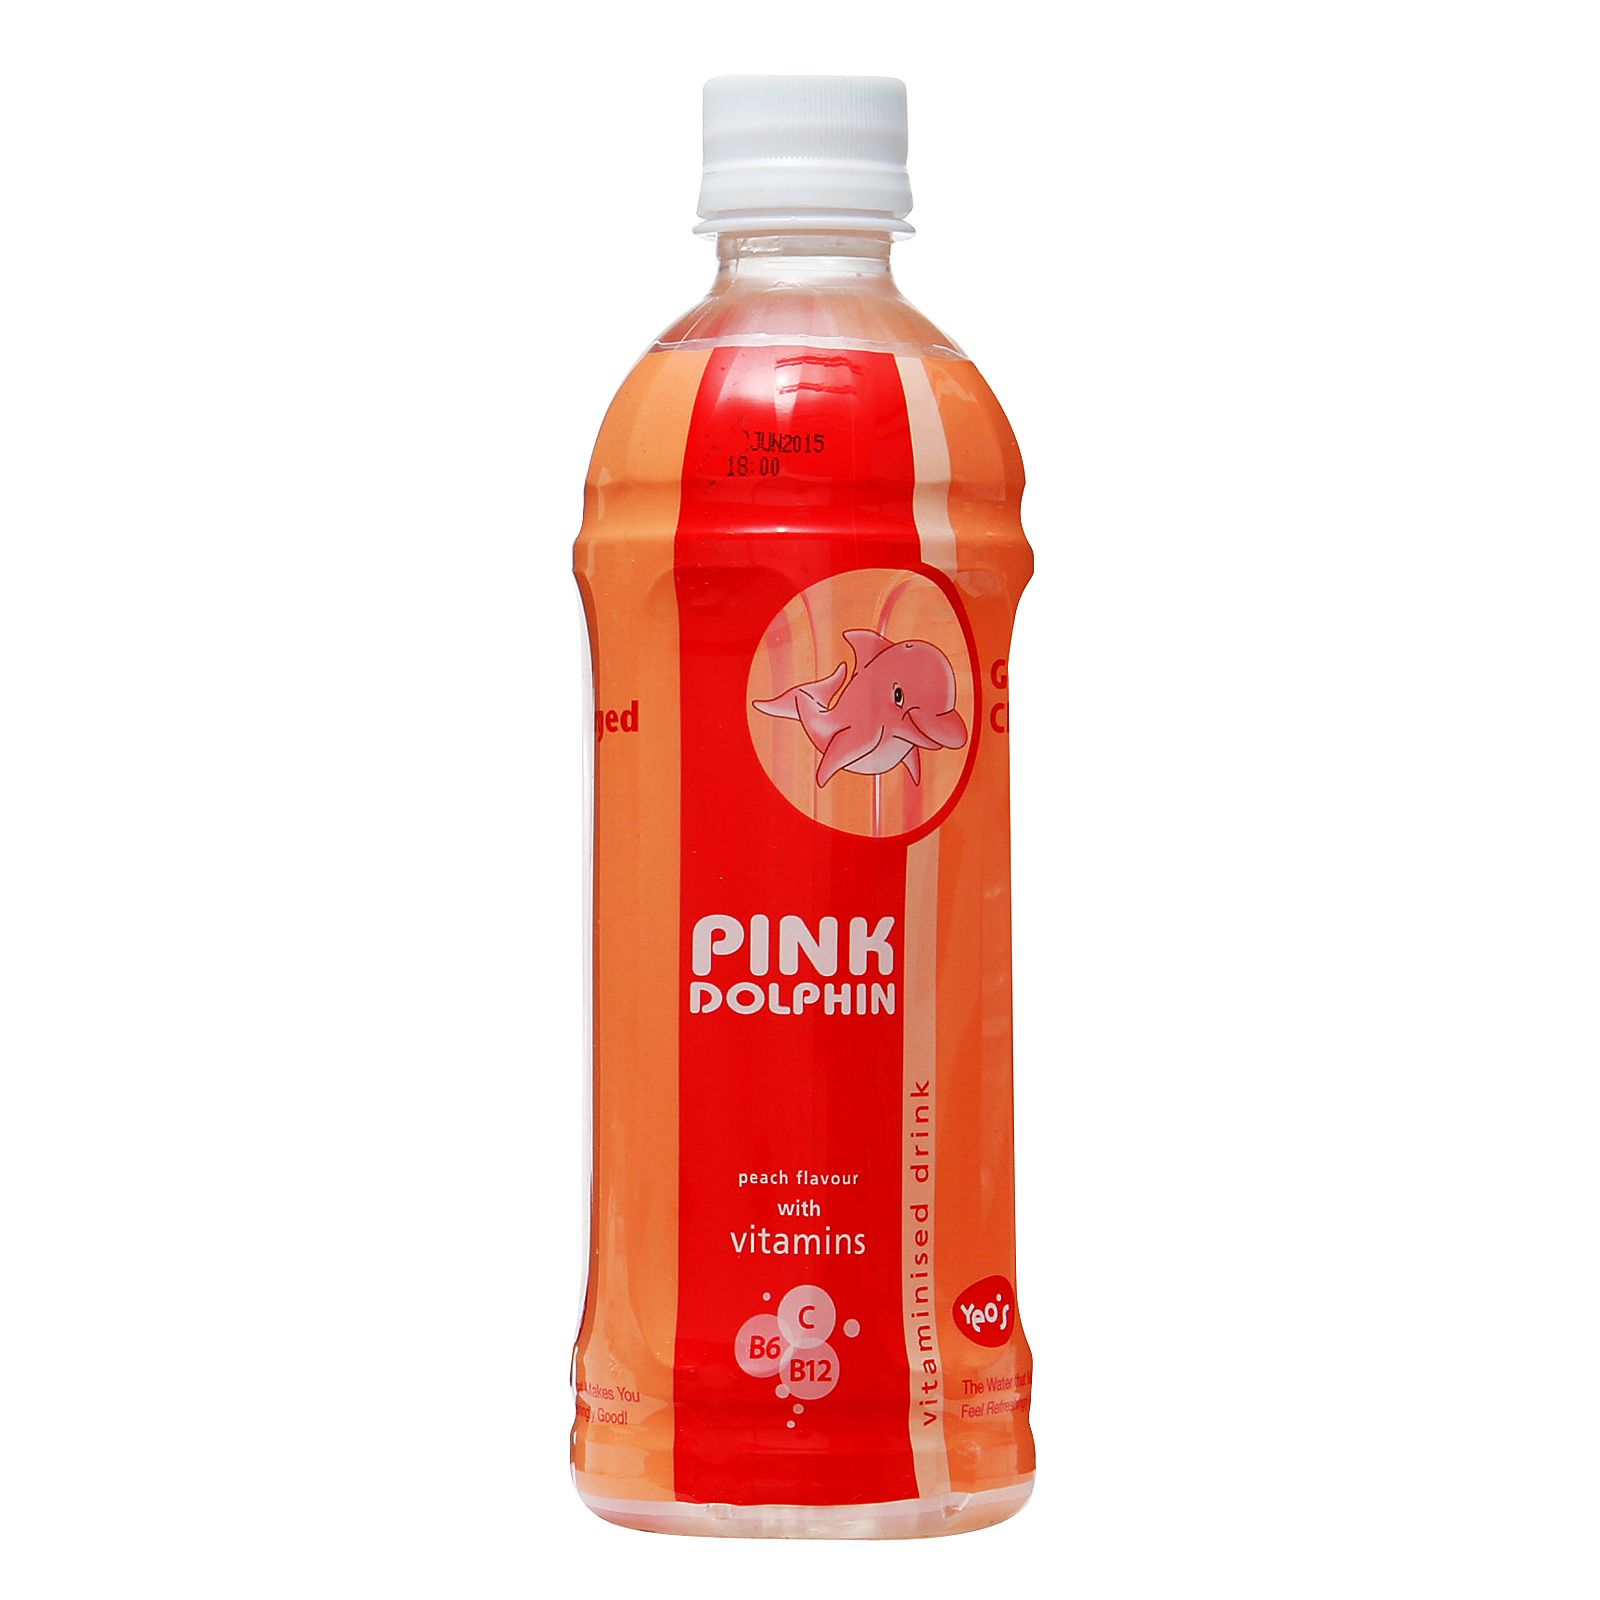 Pink Dolphin Peach Flavour Vitaminised Drink 0 55 From Redmart Pink Dolphin Drinks Bottle Packaging